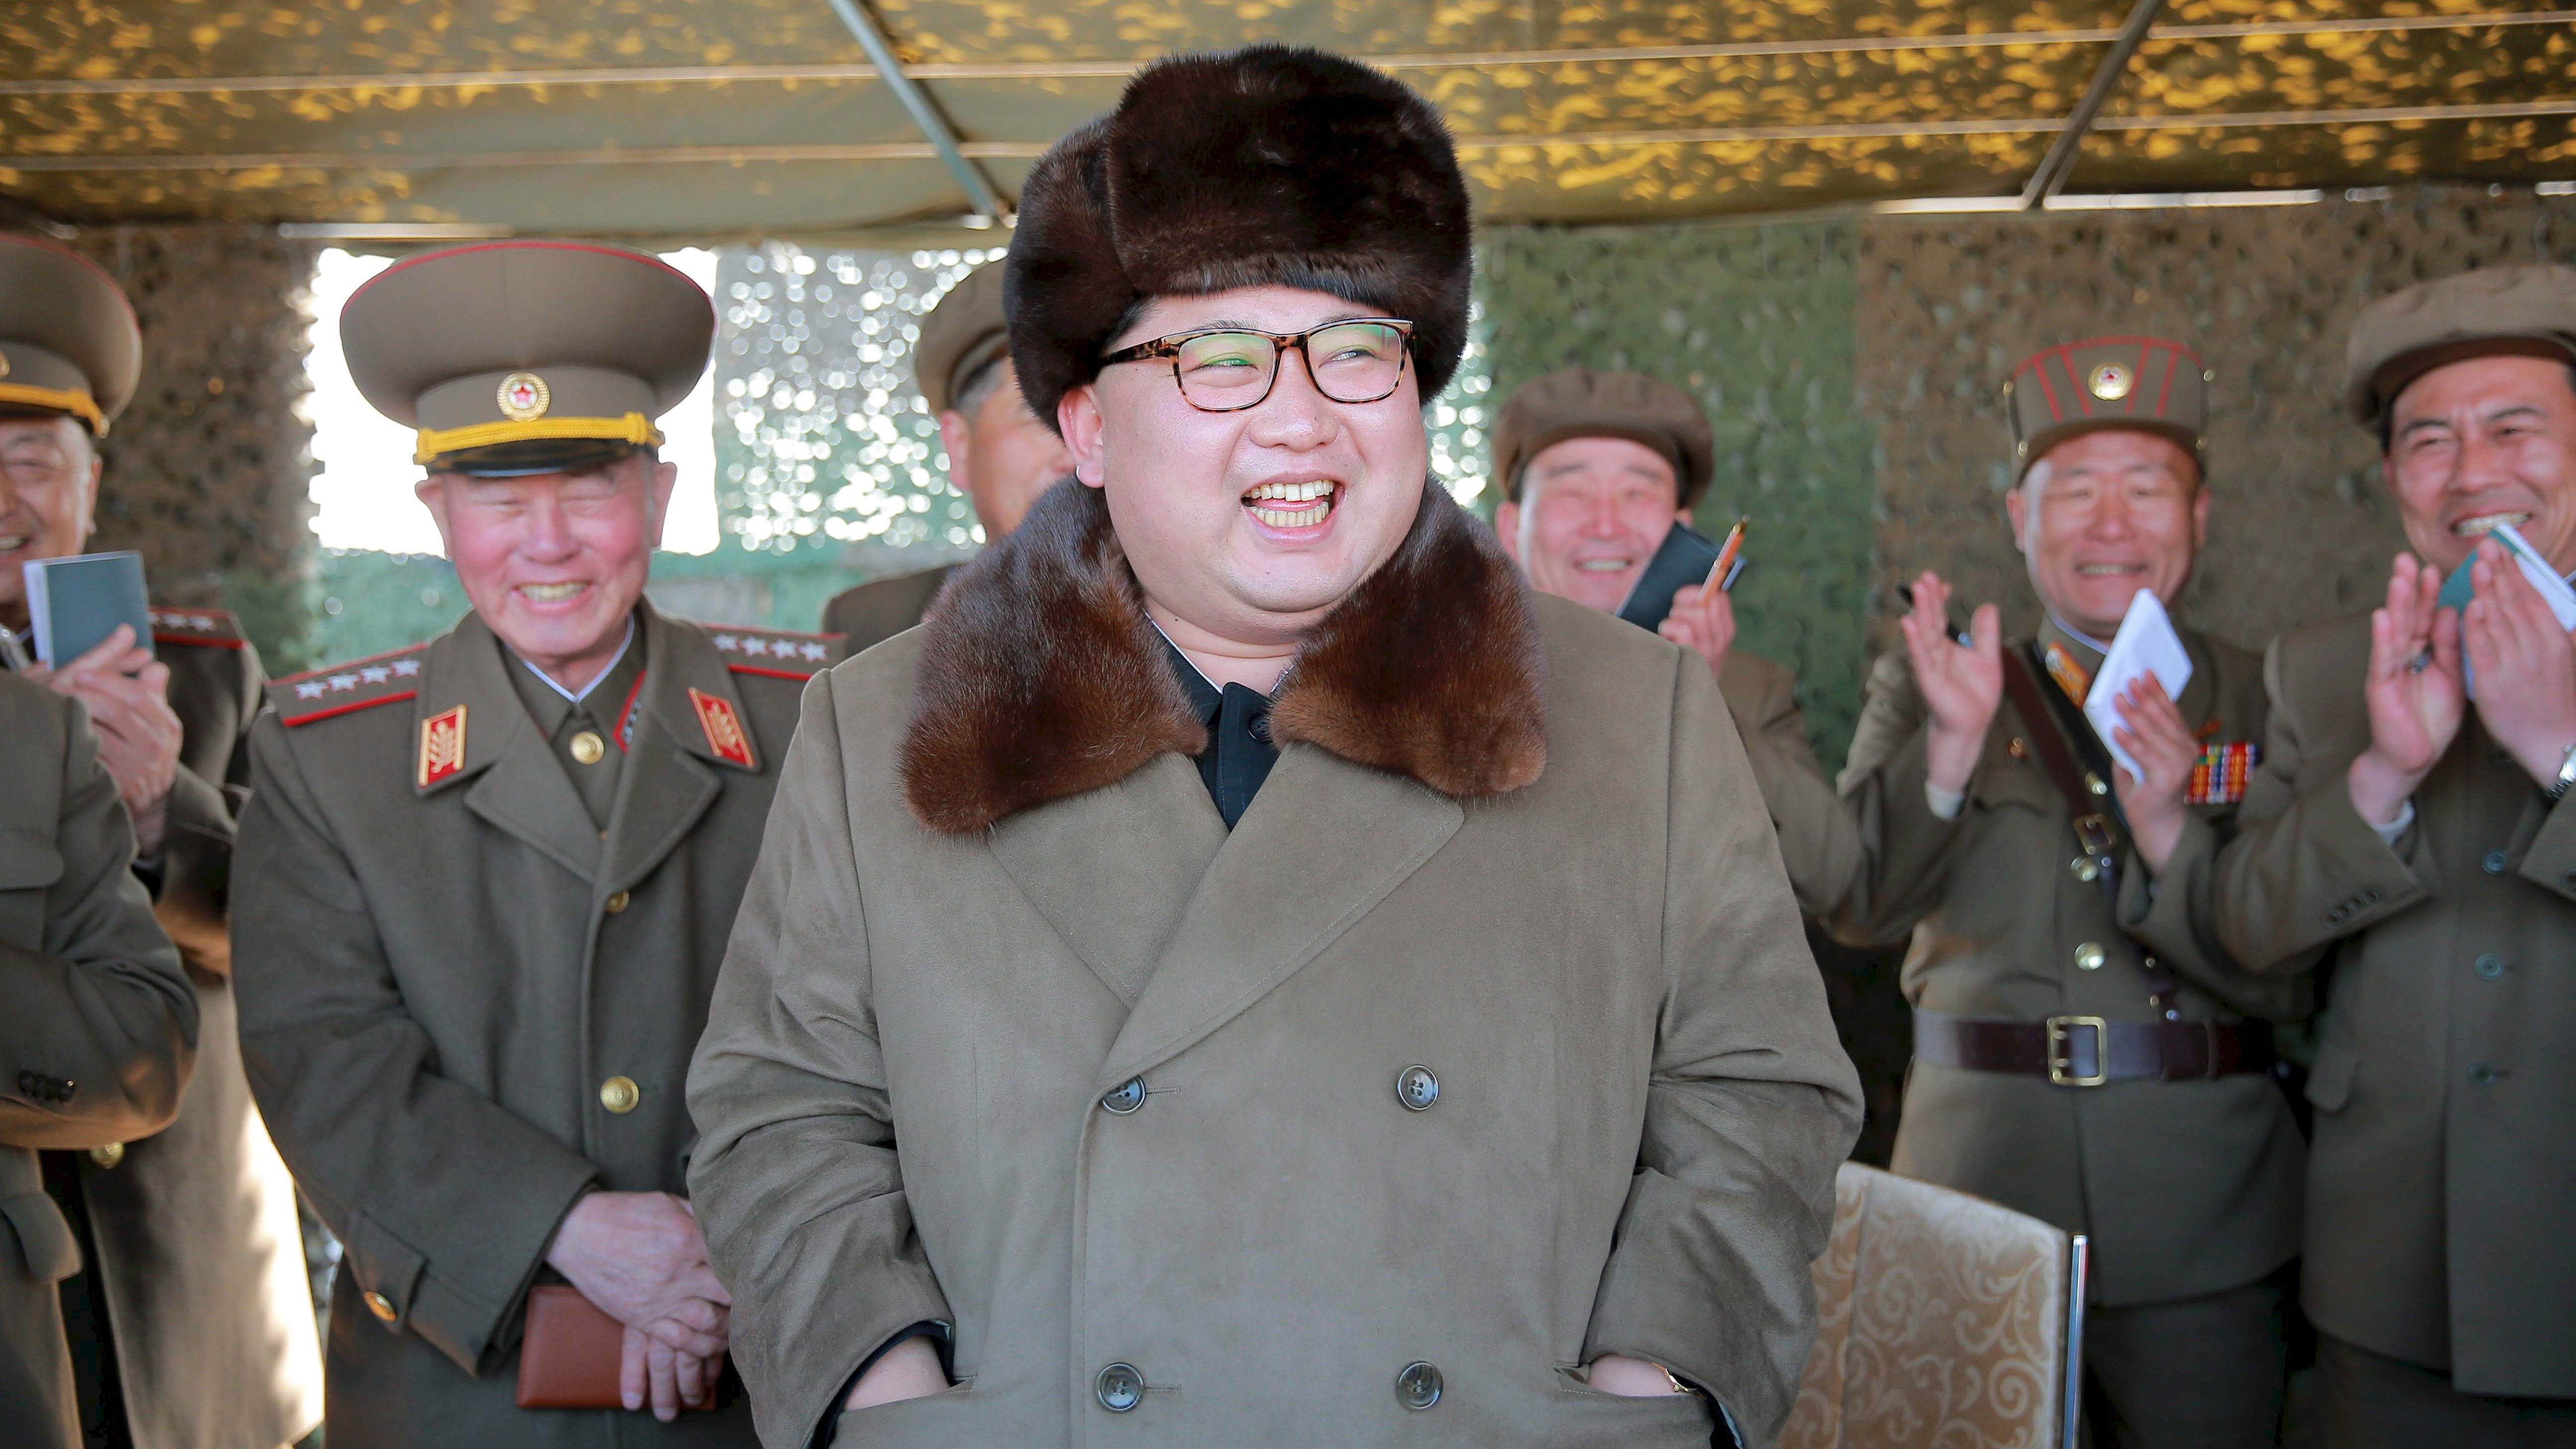 North Korean leader Kim Jong Un attends a demonstration of a new large-caliber multiple rocket launching system at an unknown location, in this undated file photo released by North Korea's Korean Central News Agency (KCNA) on March 22, 2016.